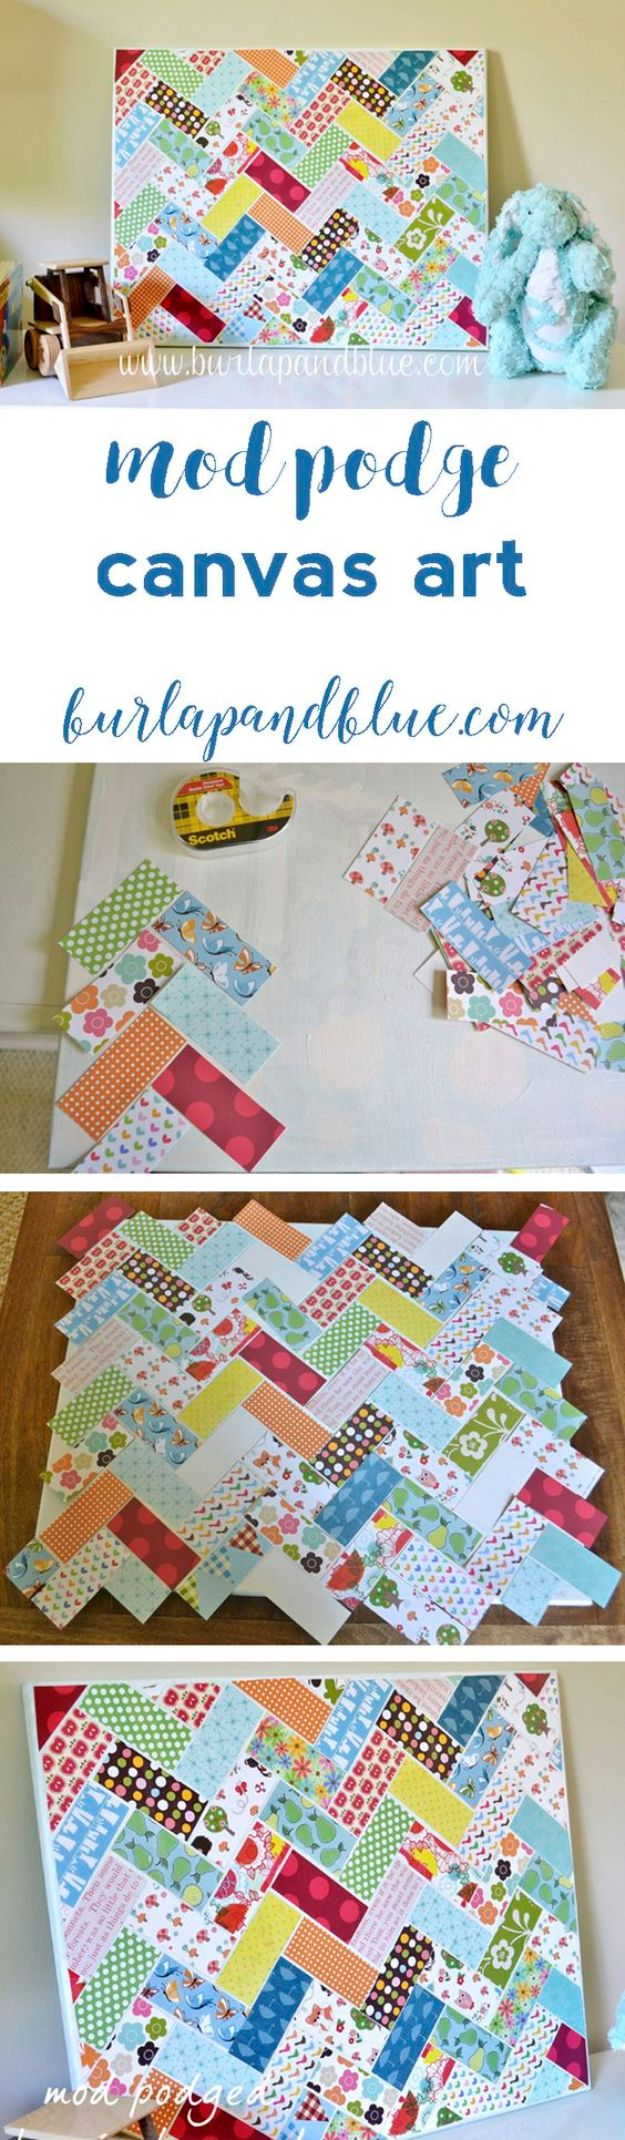 Do It Yourself Home Decorating Ideas: 33 Cool Projects To Make From Quilting Scraps